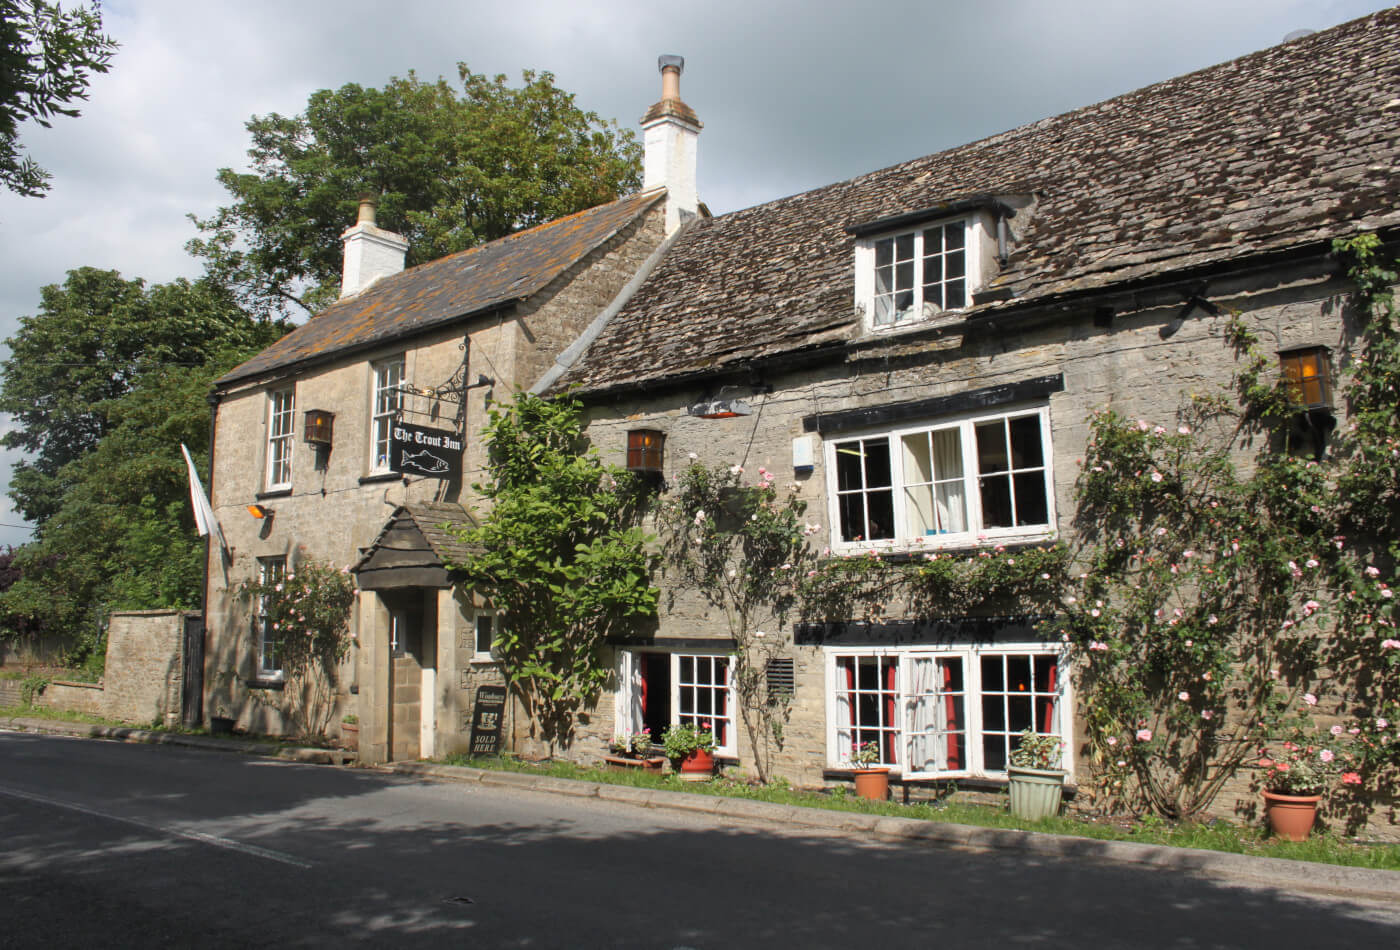 13 cotswold pubs with interesting unusual names manor cottages rh manorcottages co uk